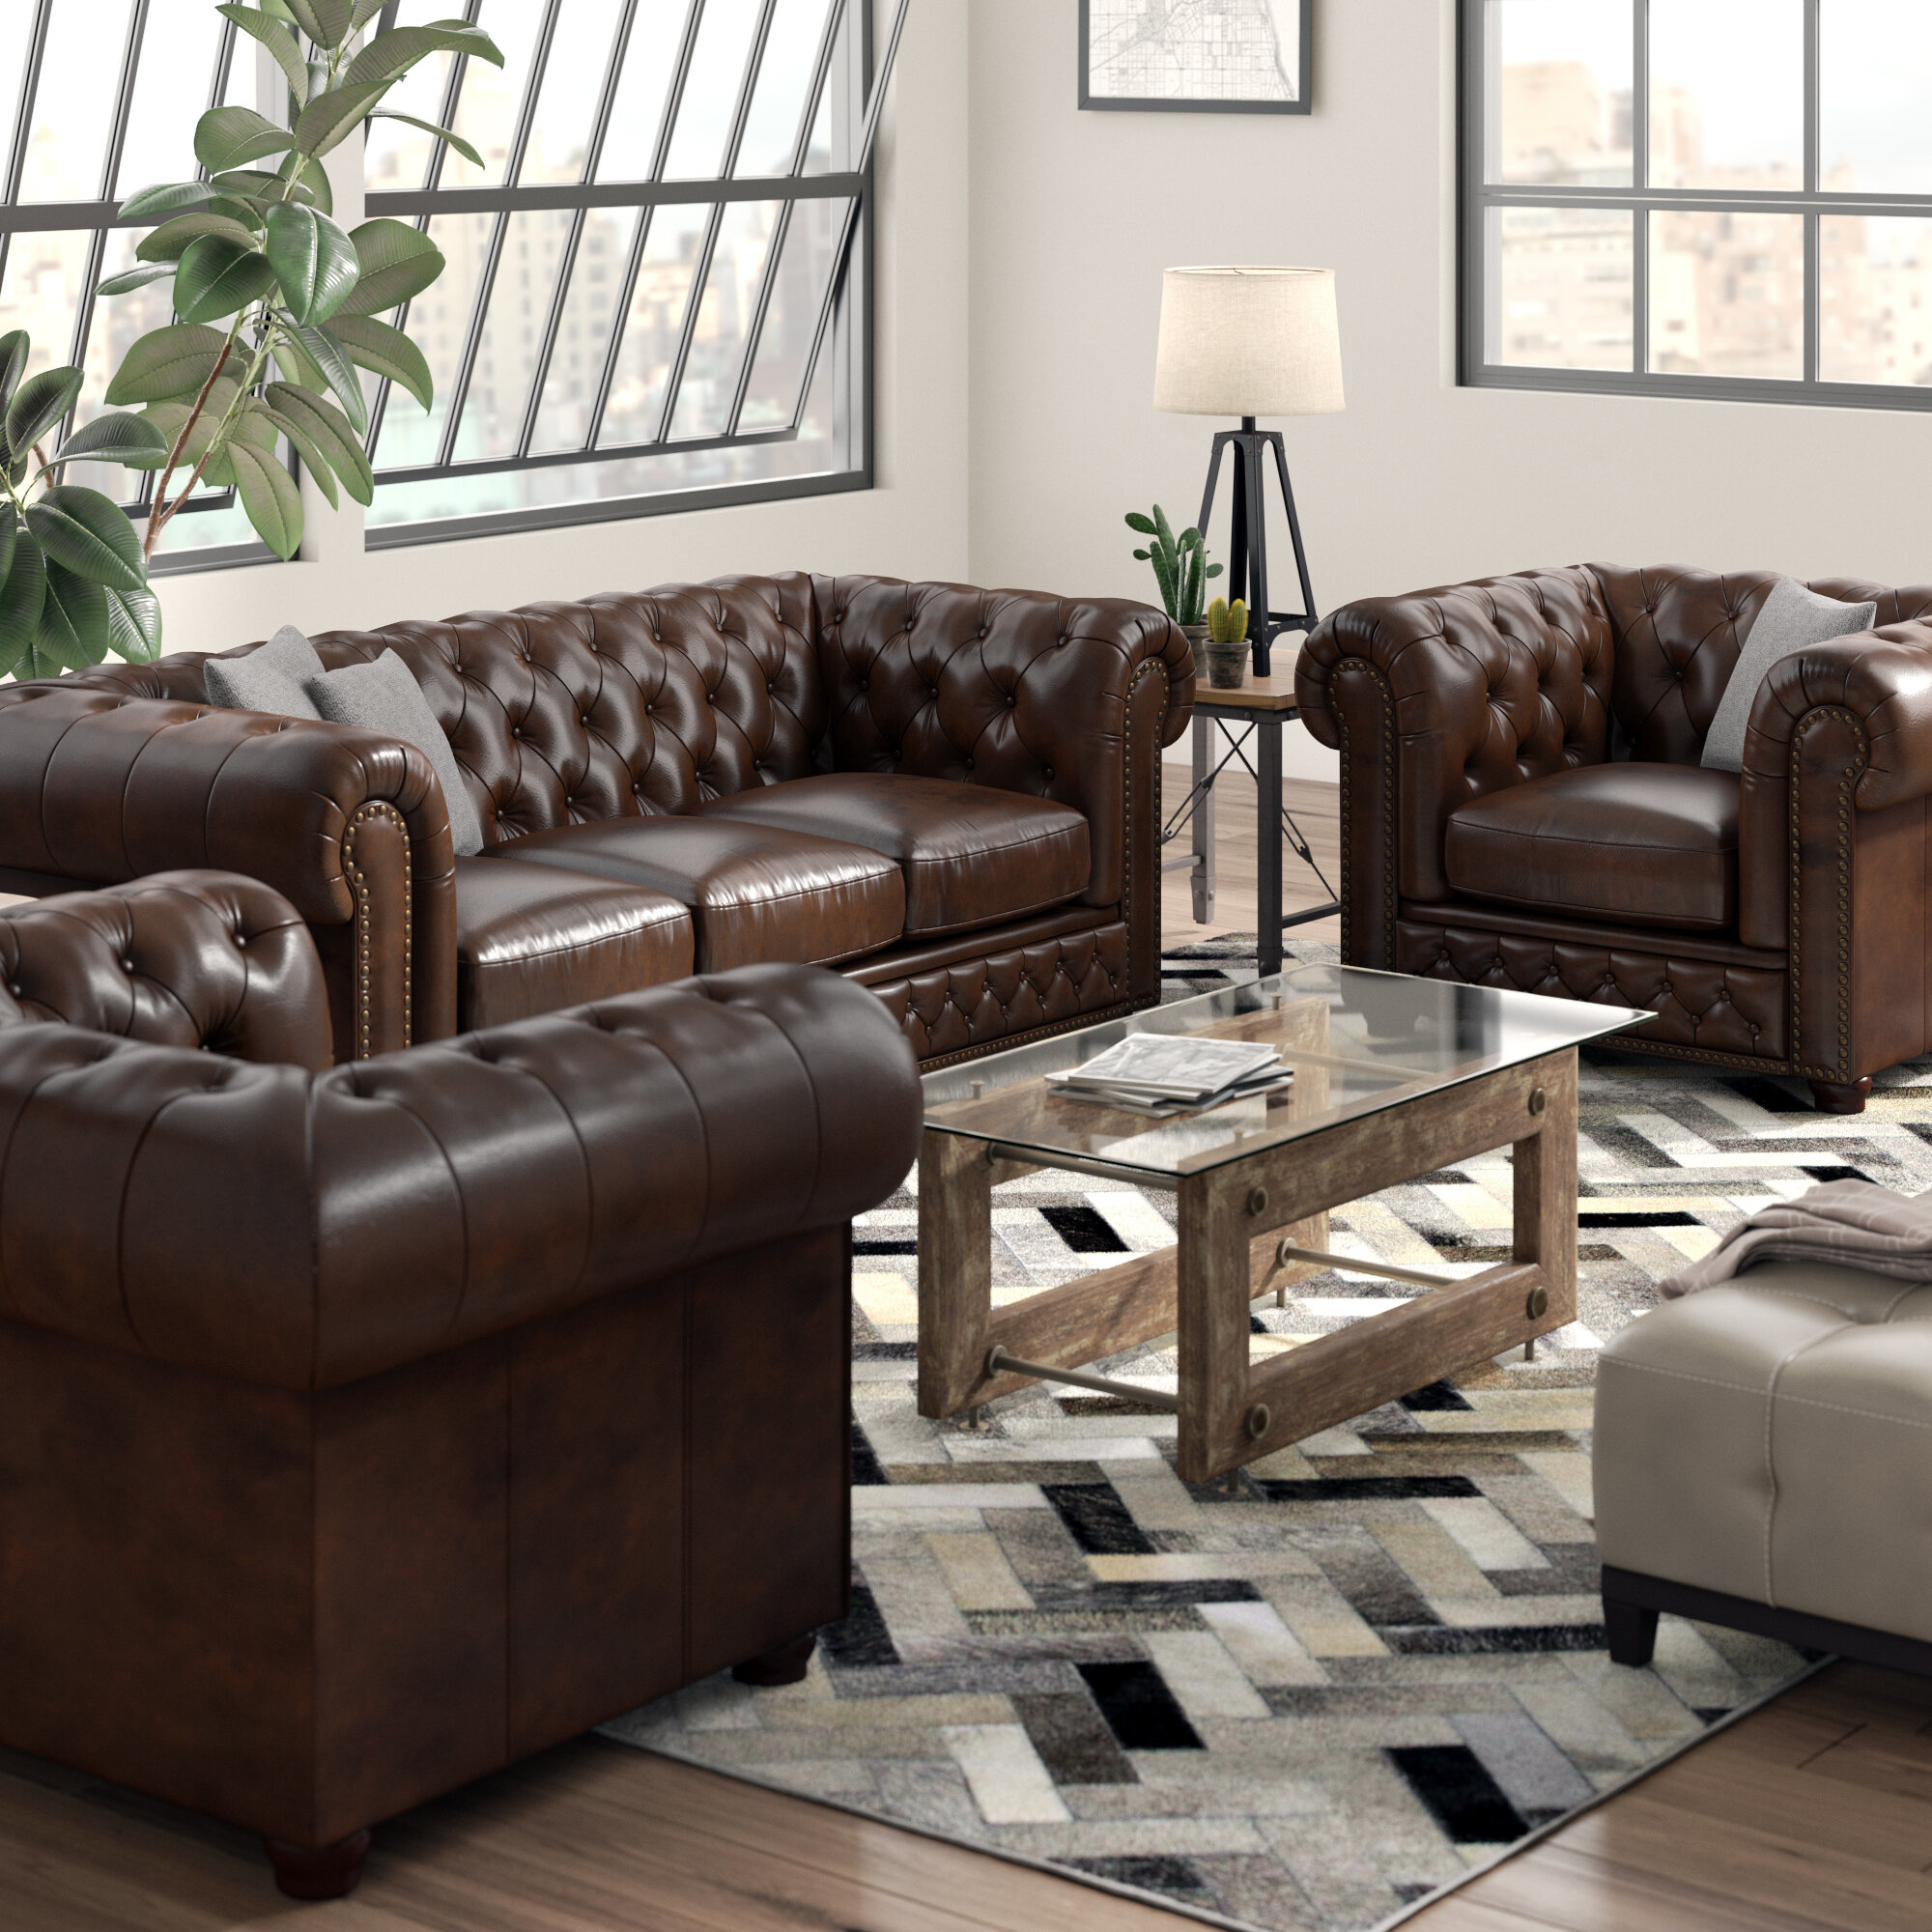 Worcester Leather 3 Piece Living Room Set inside 15 Awesome Ways How to Makeover Cheap 3 Piece Living Room Set